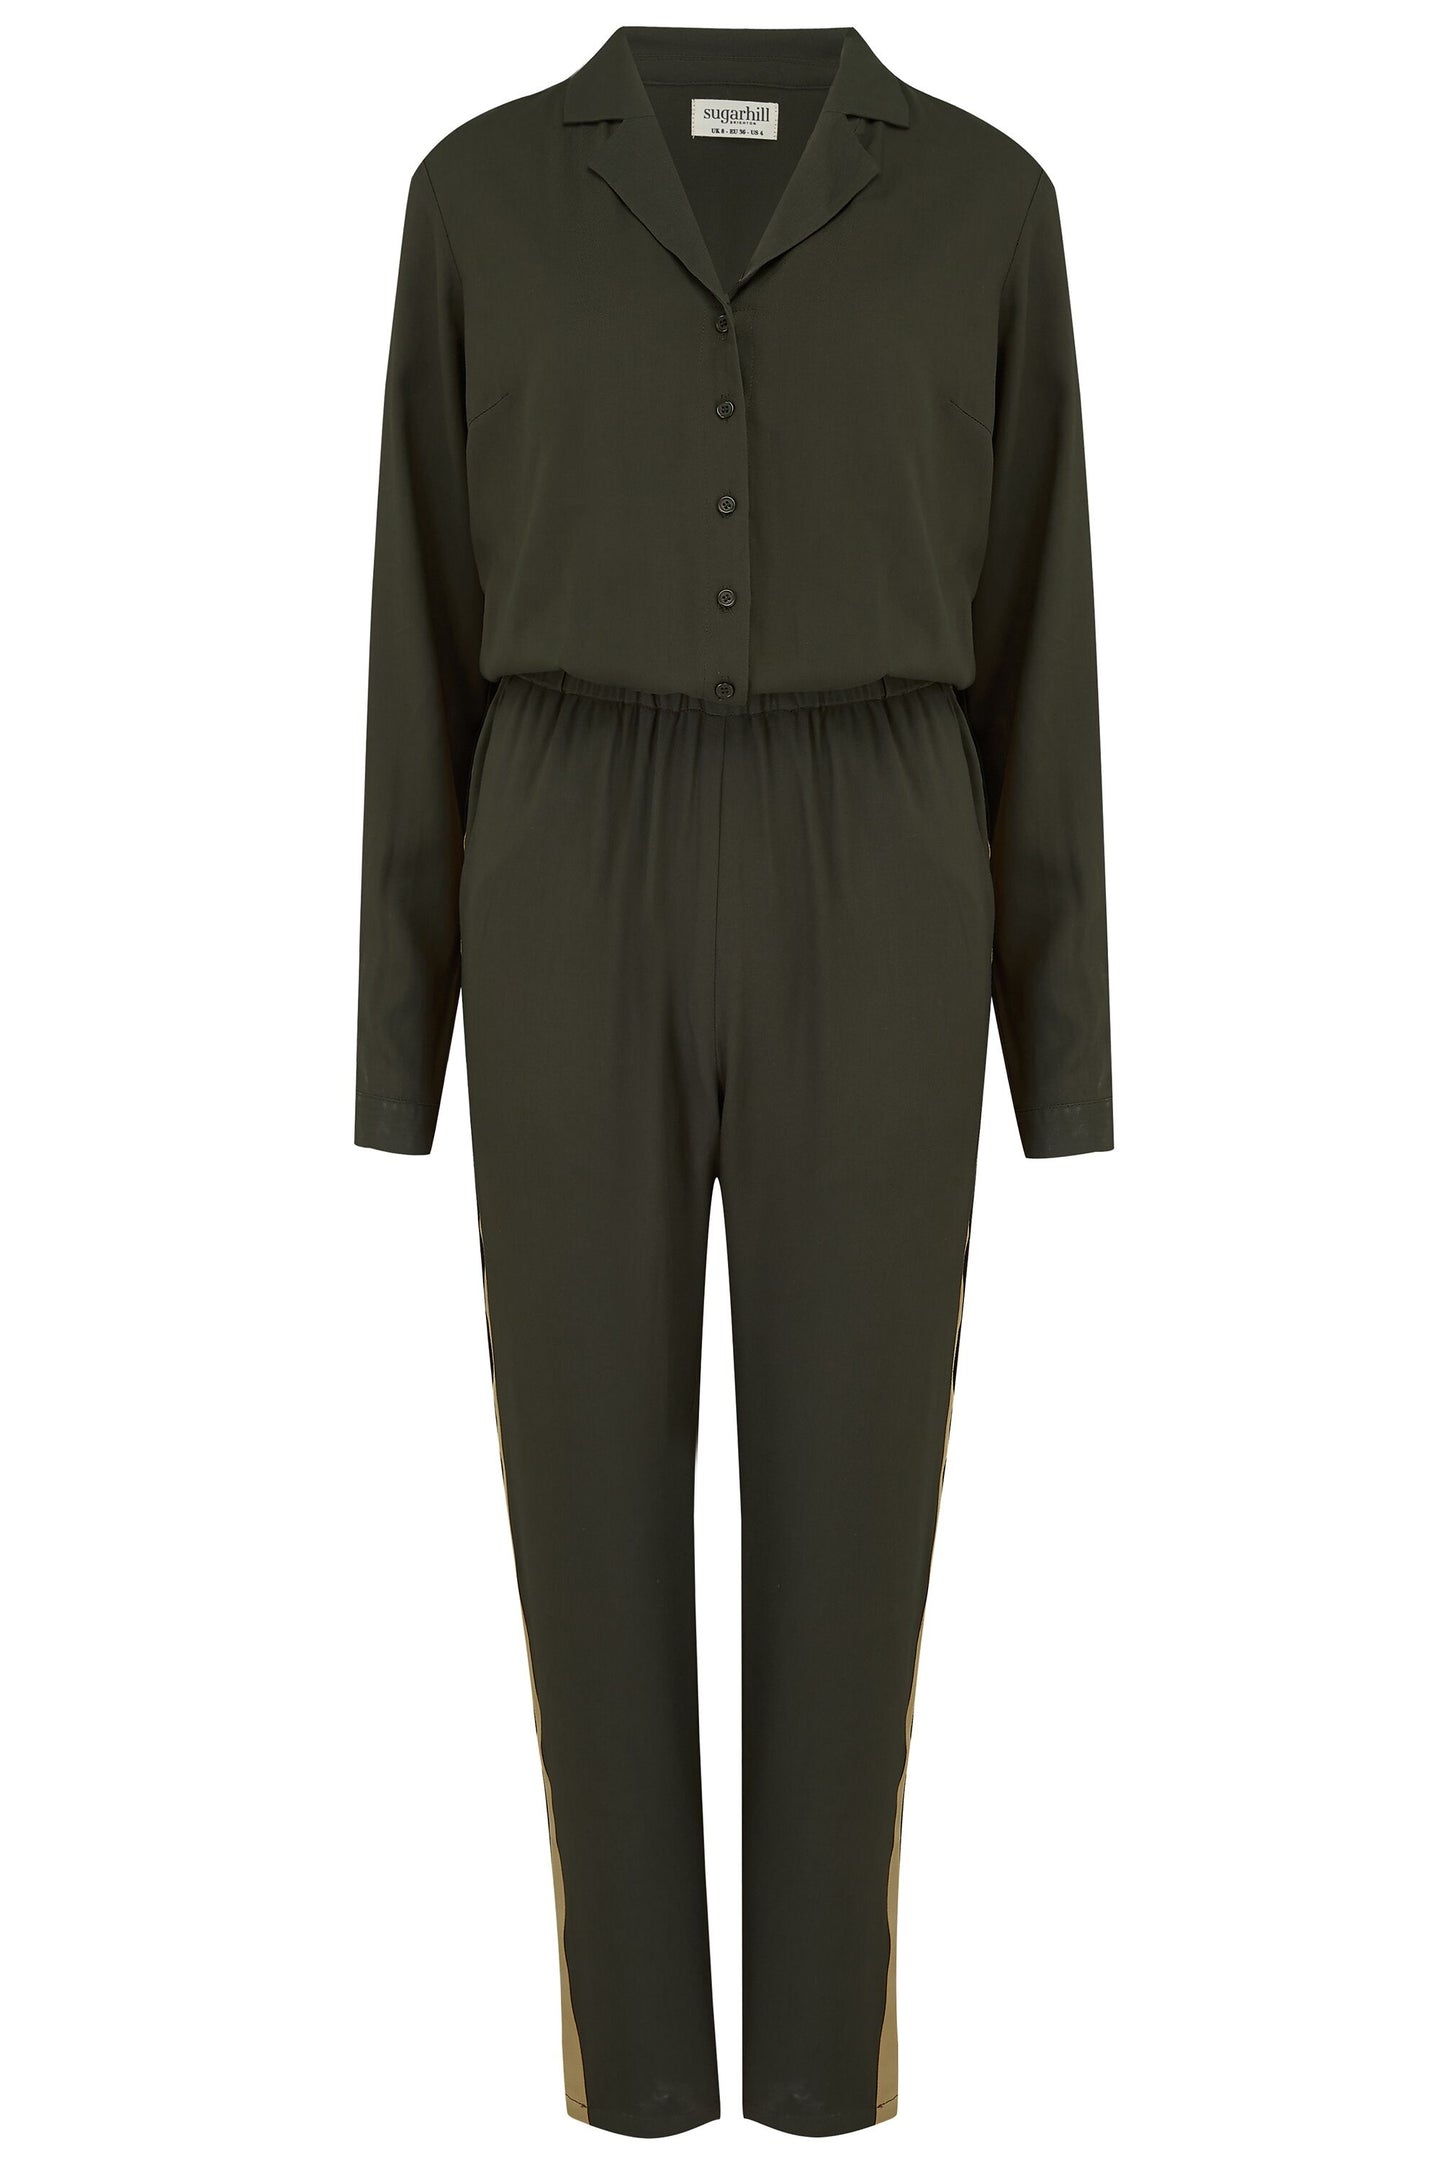 Iona Gold Tipped Jumpsuit - Khaki Green